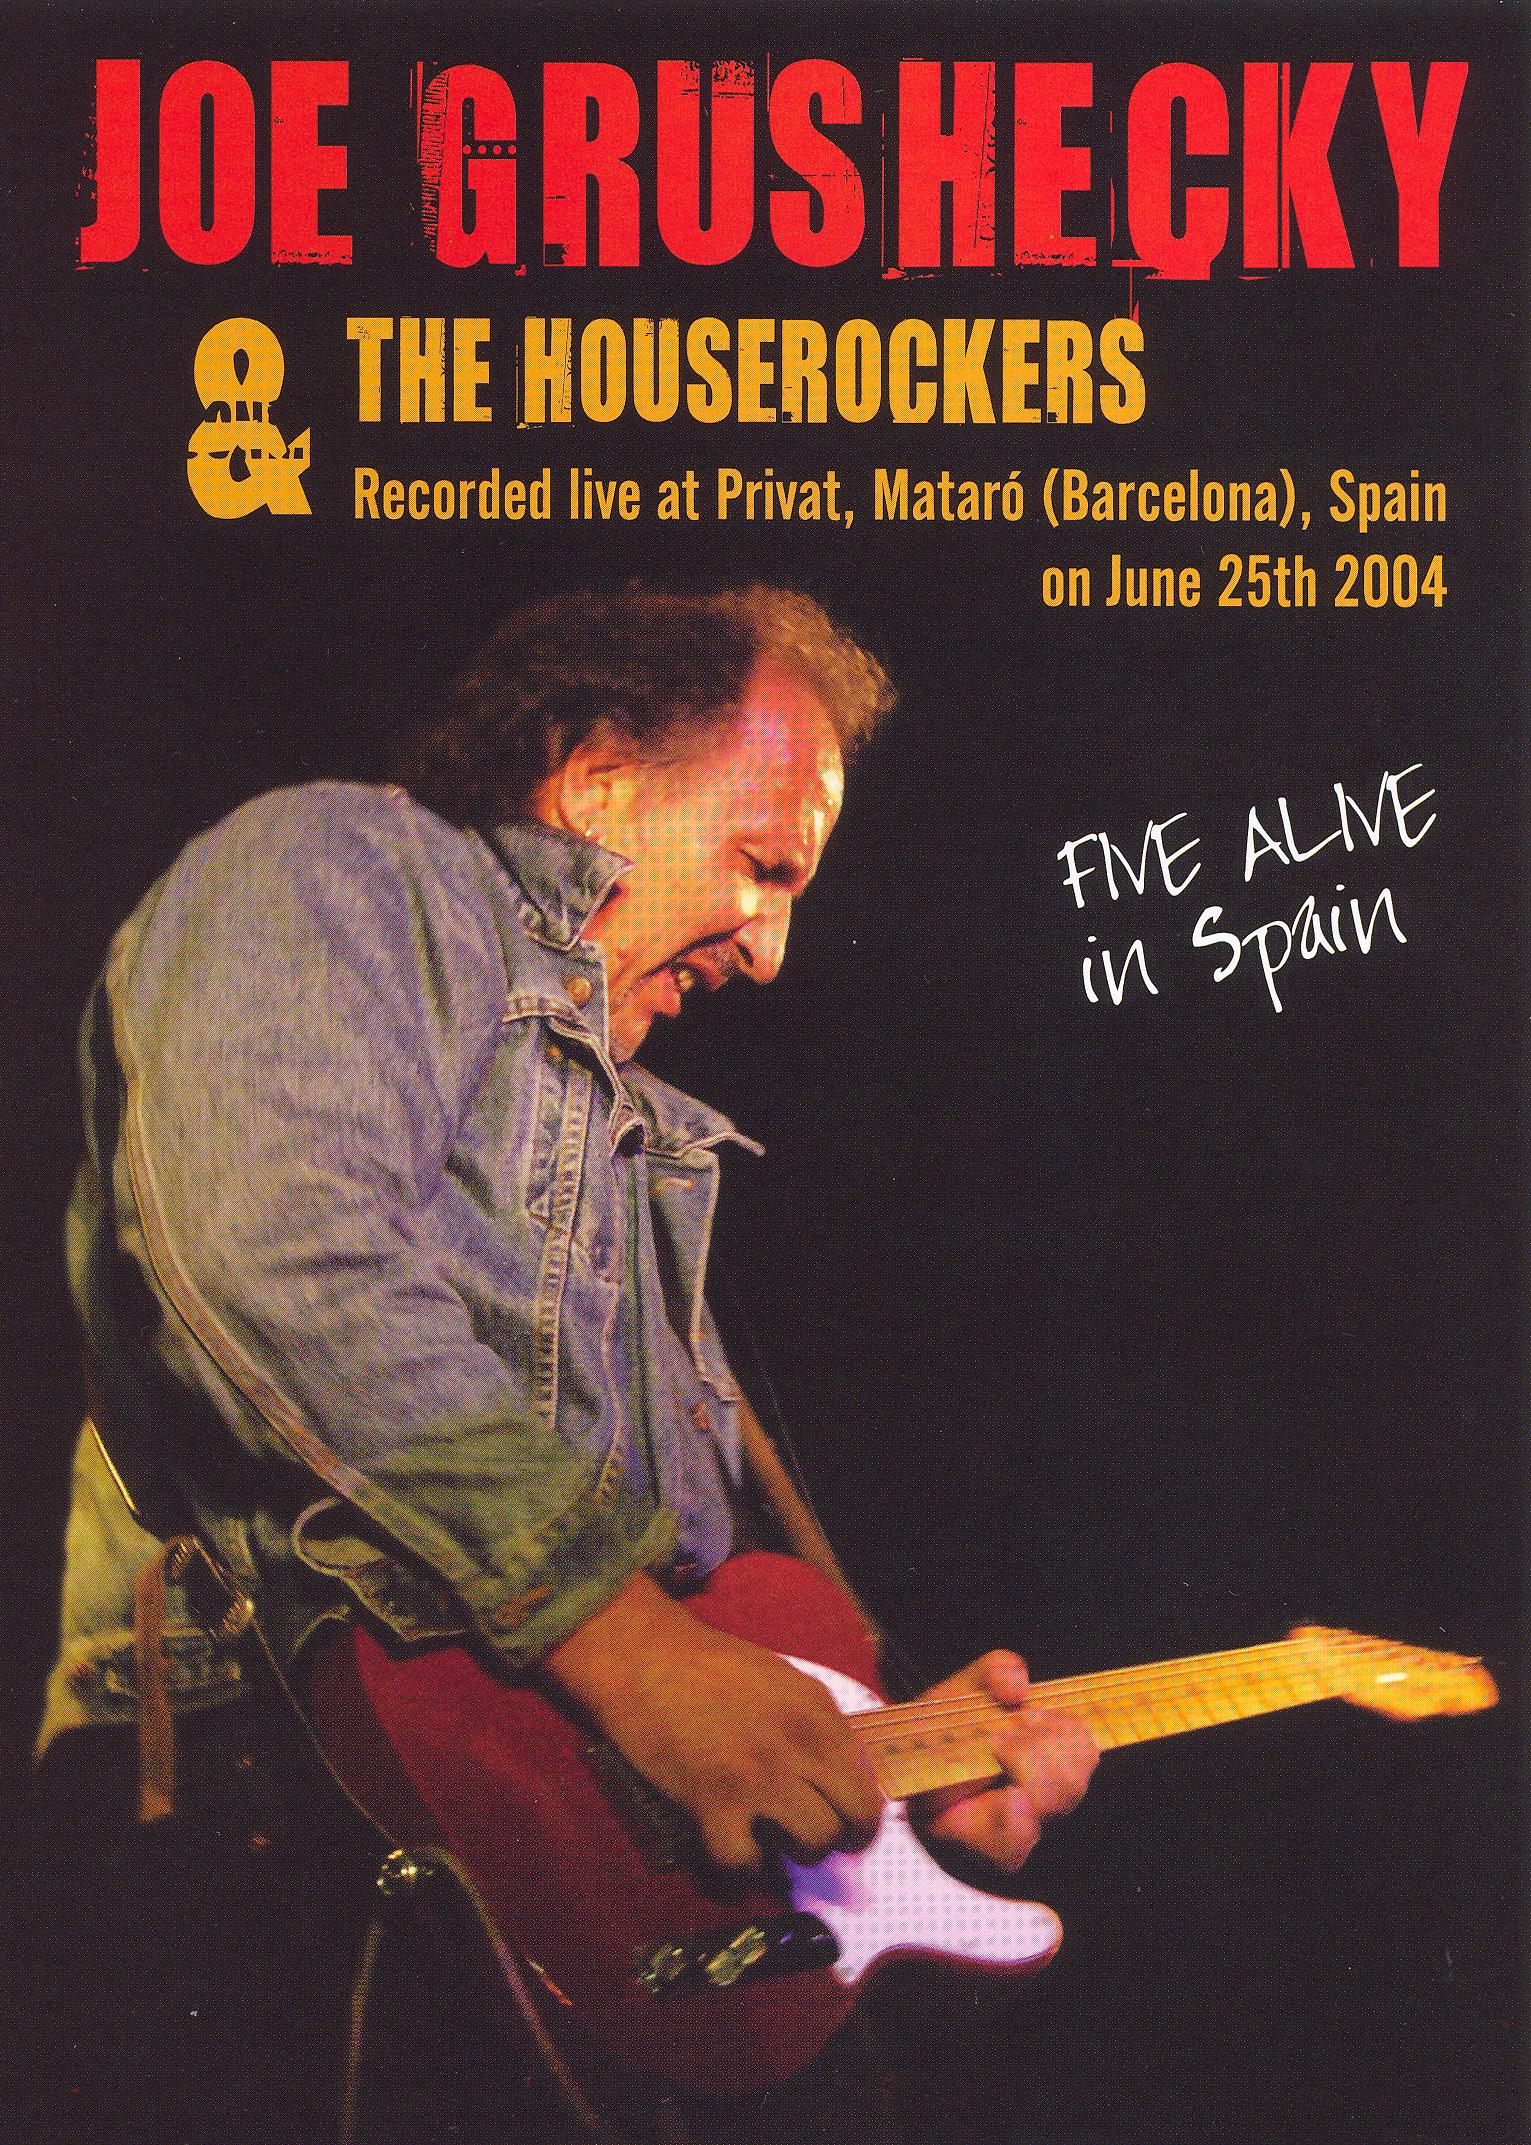 Grushecky, Joe and the Houserockers: Five Alive in Spain